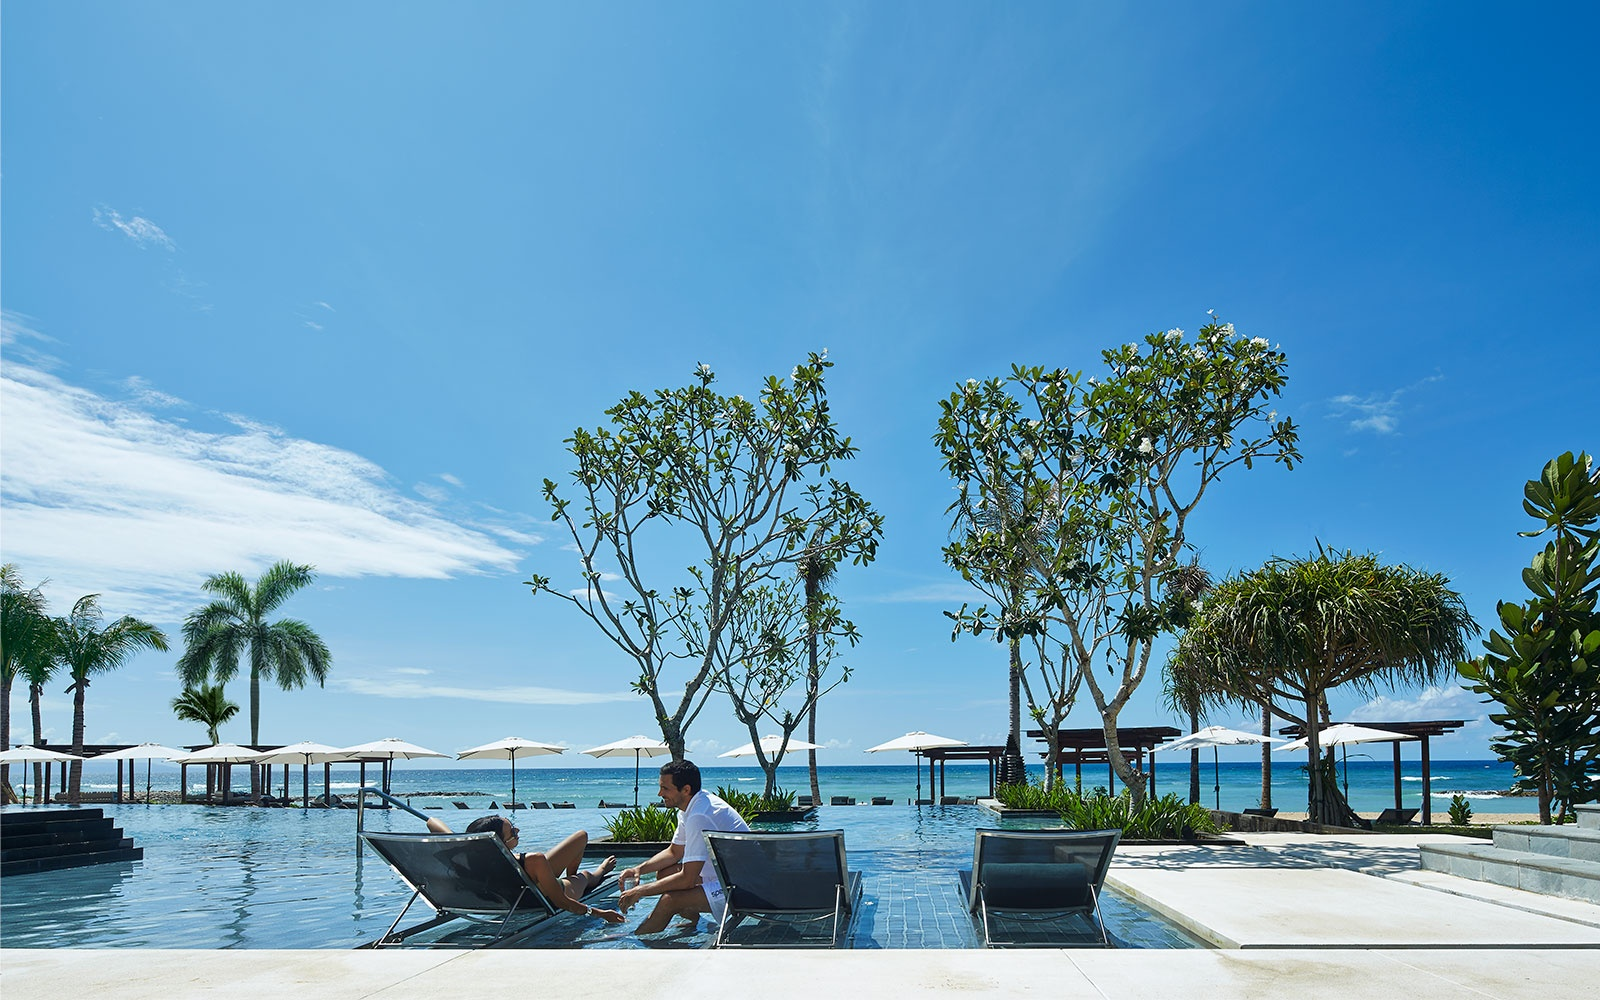 The Ritz-Carlton Bali, Bali, Indonesia